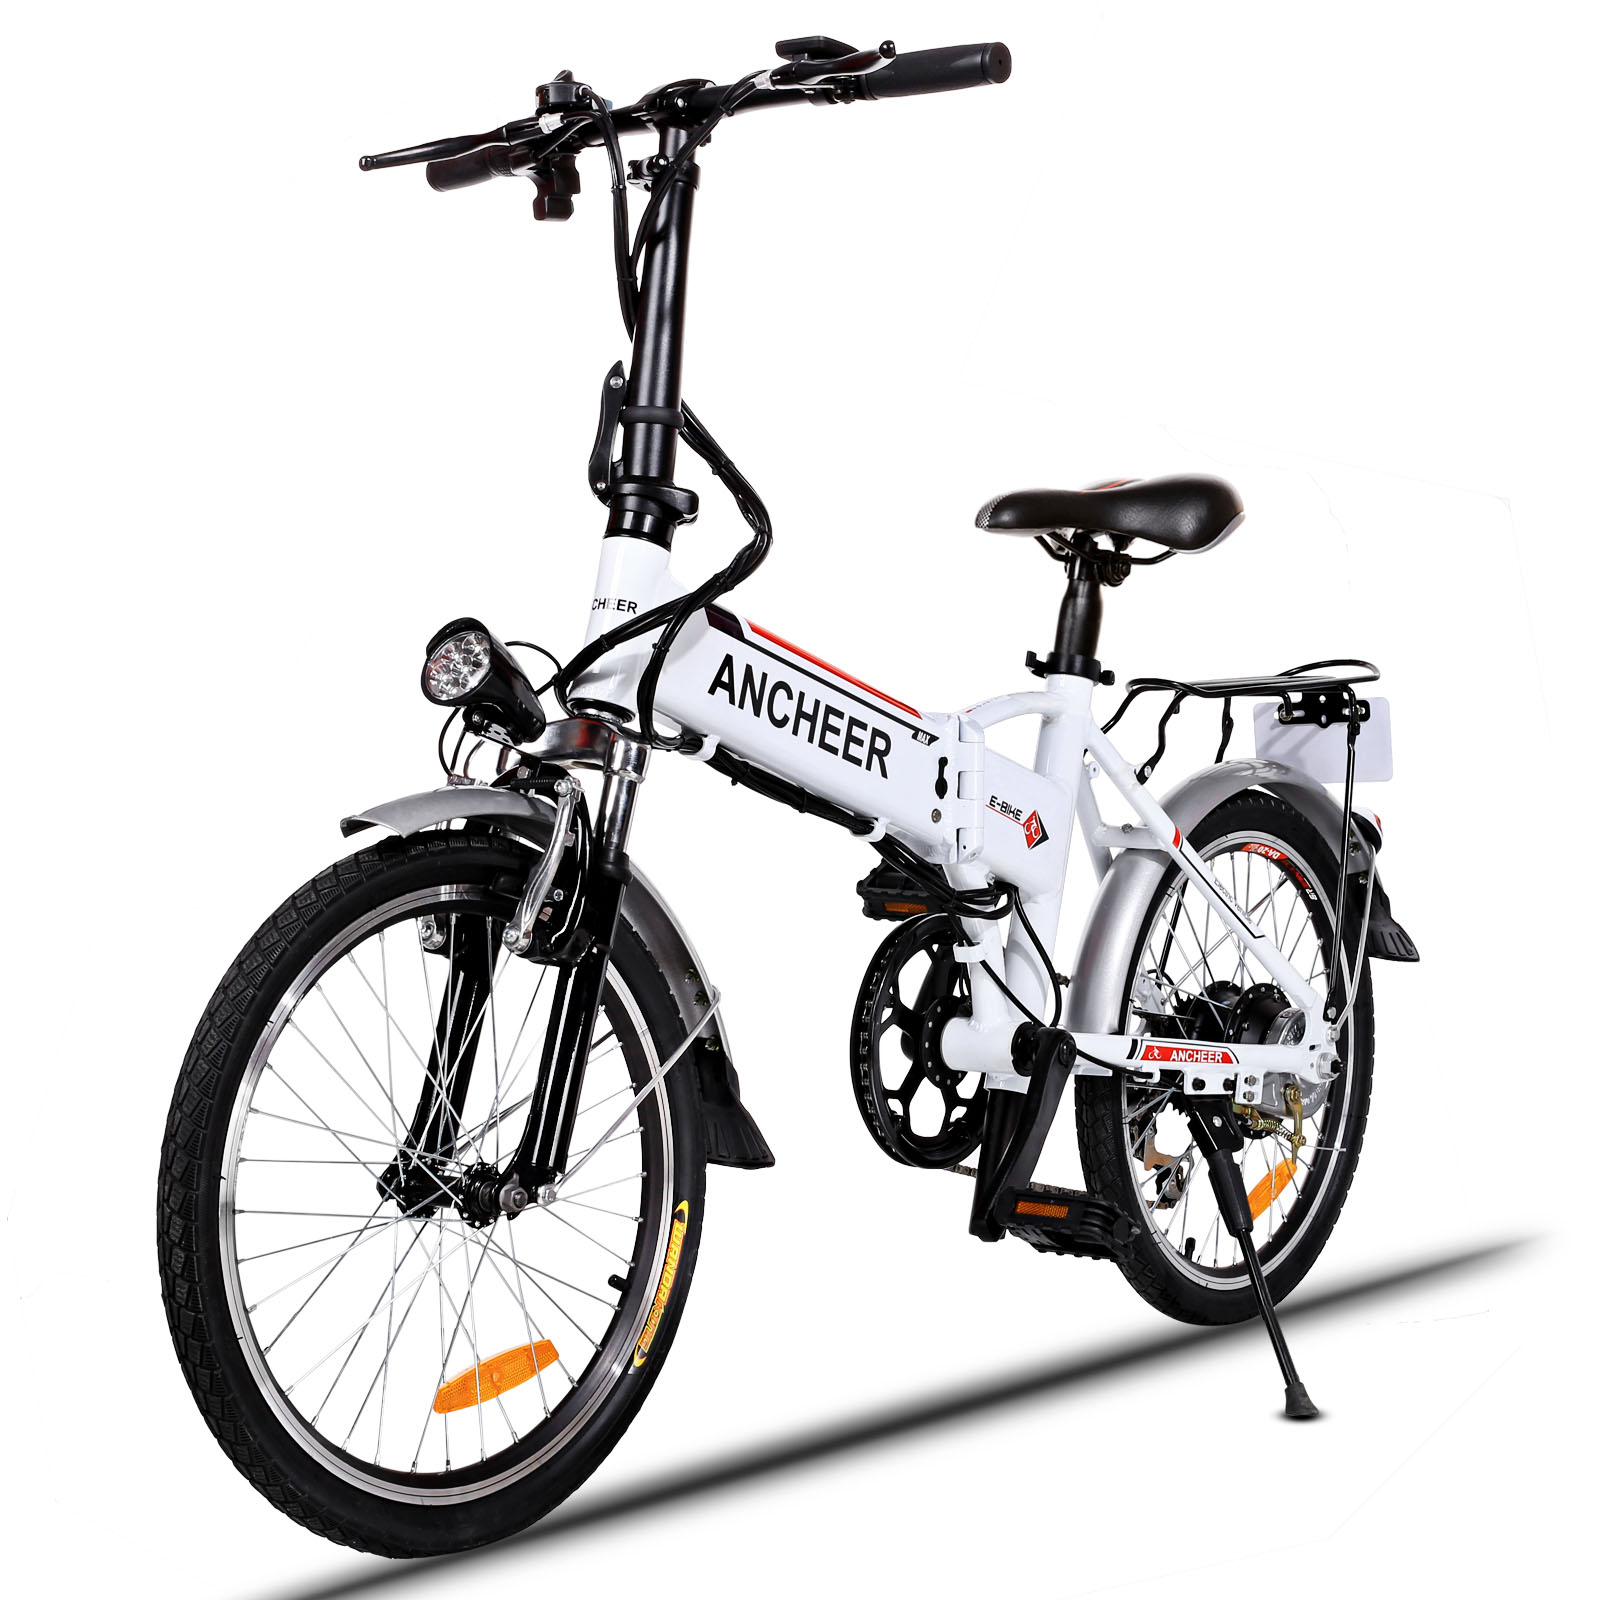 Ancheer 18.7'' Foldable Adjustable Electric Mountain Bike Power Bicycle with Detachable Lithium Battery by